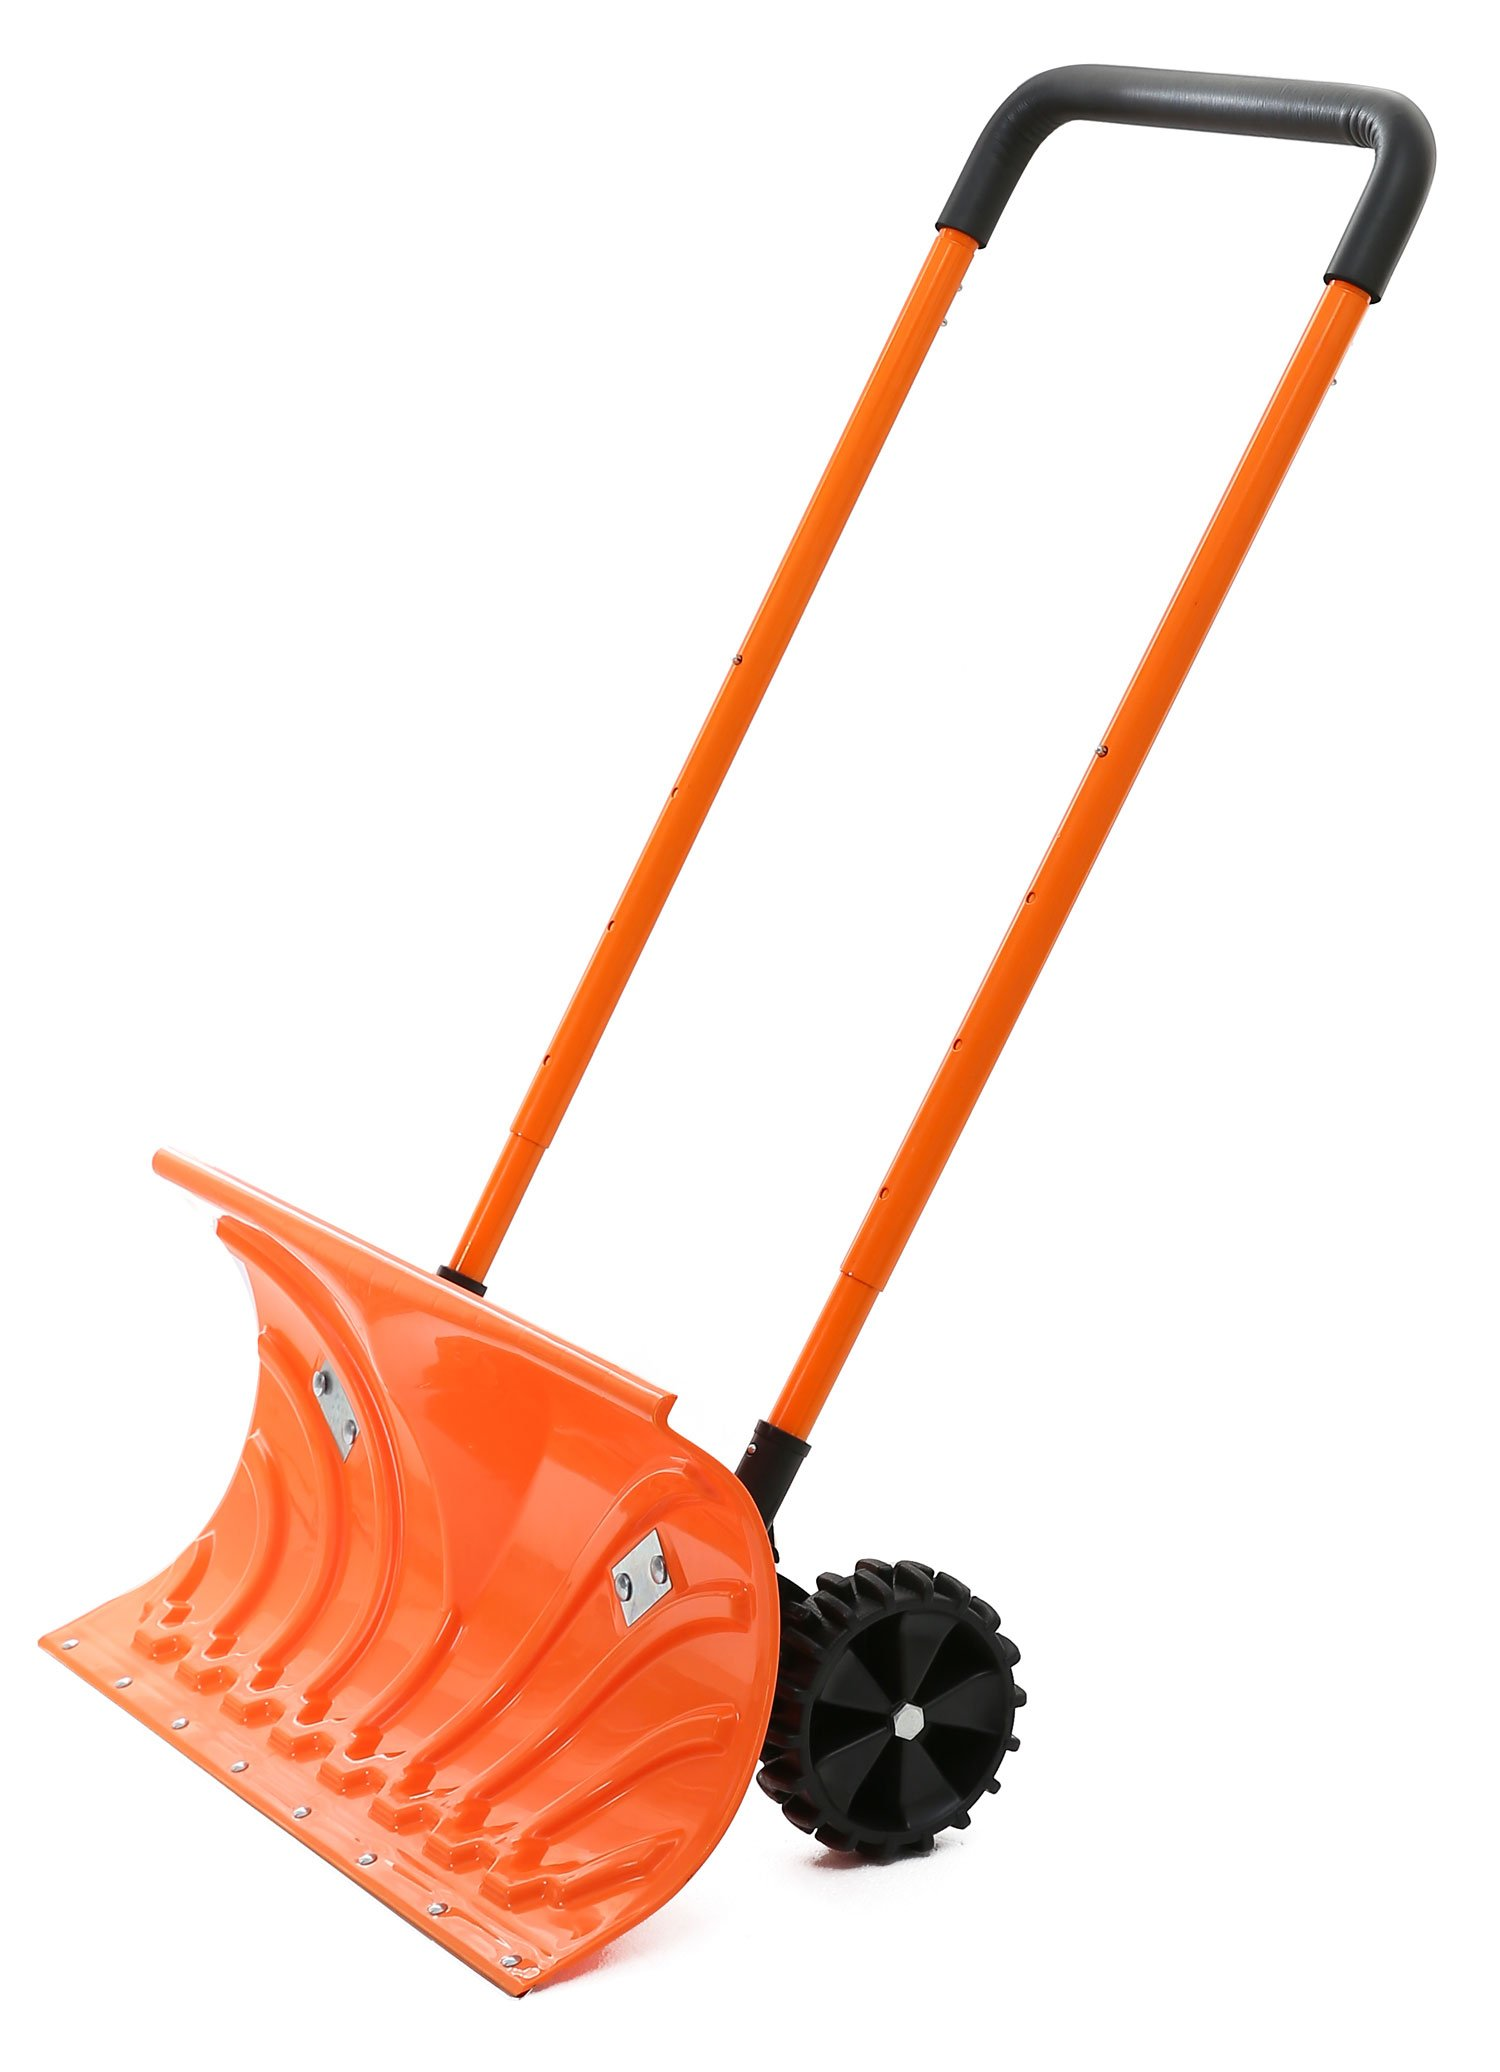 Snow Plow Shovel Pusher with Wheels – Snow Removal Tools for Driveway as a Heavy Duty Wheeled Rolling Snow Pusher to Clear the Snow on Driveway Sidewalk or Slippery Roads Effortlessly by Perfect Life Ideas